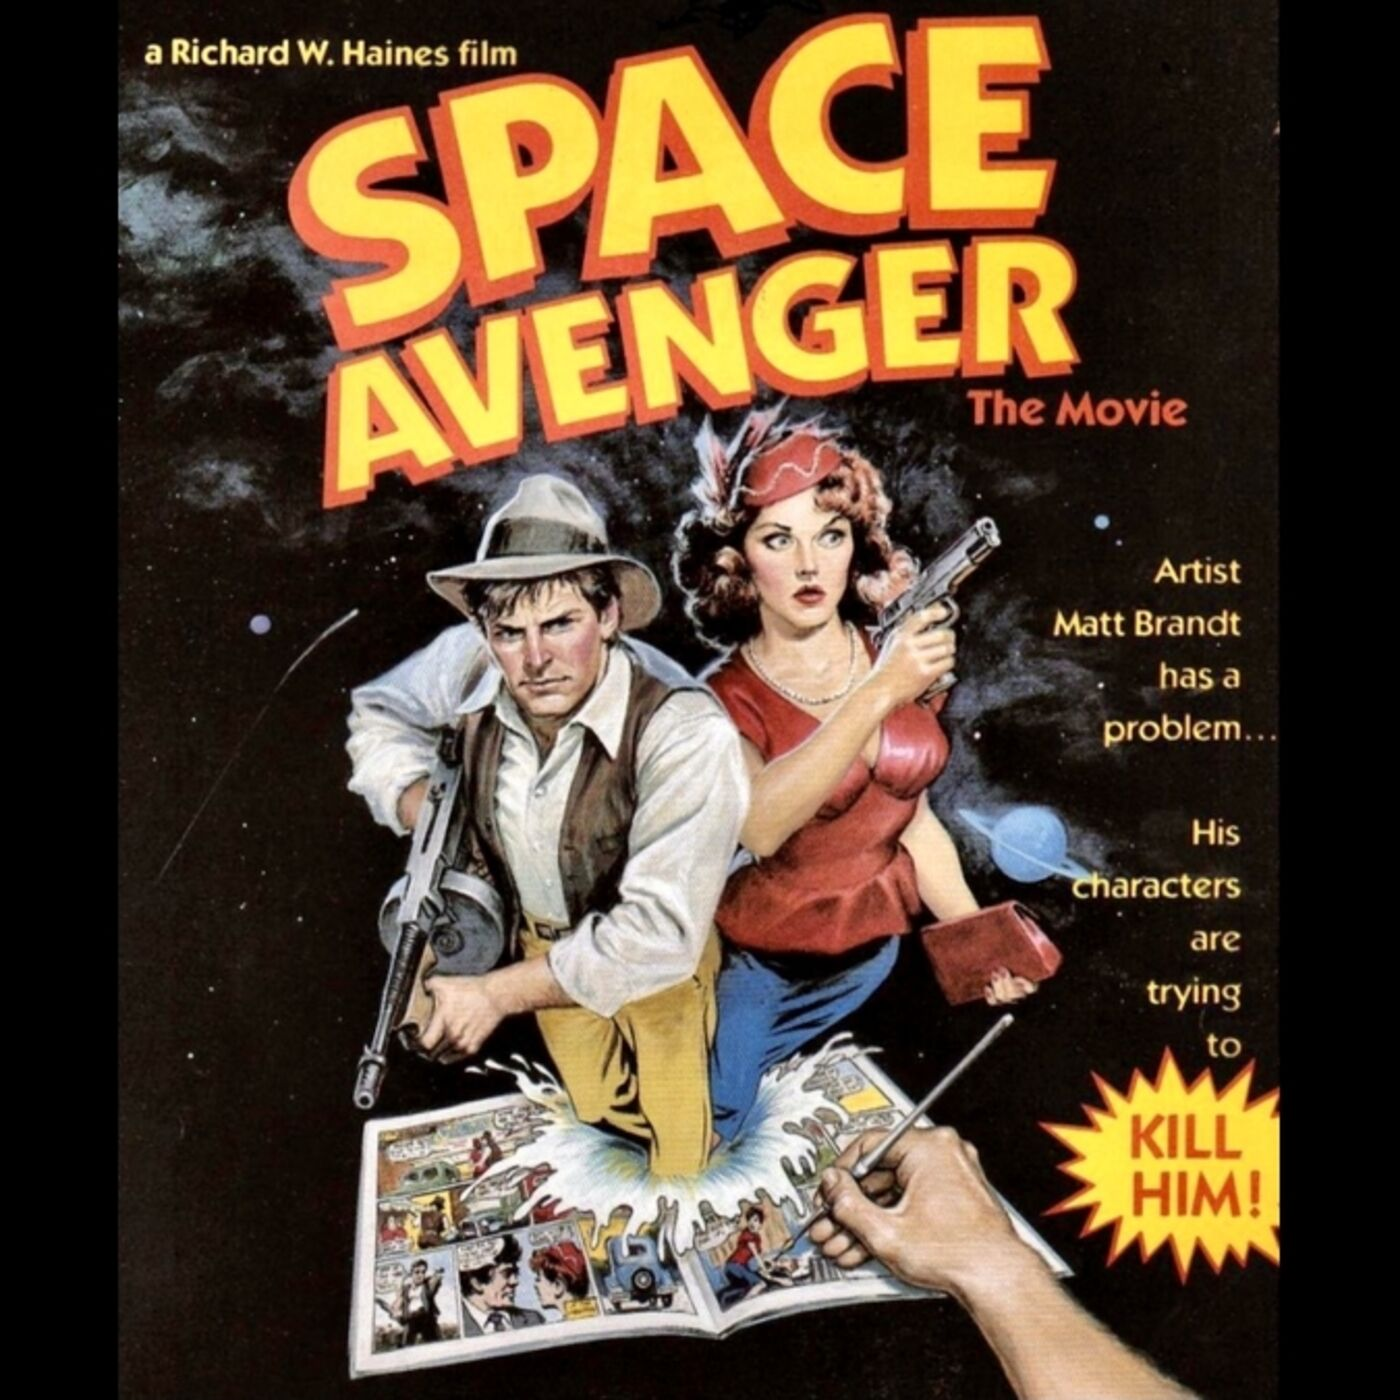 Alien Space Avenger / Technicolor Movies: The History of Dye Transfer Printing